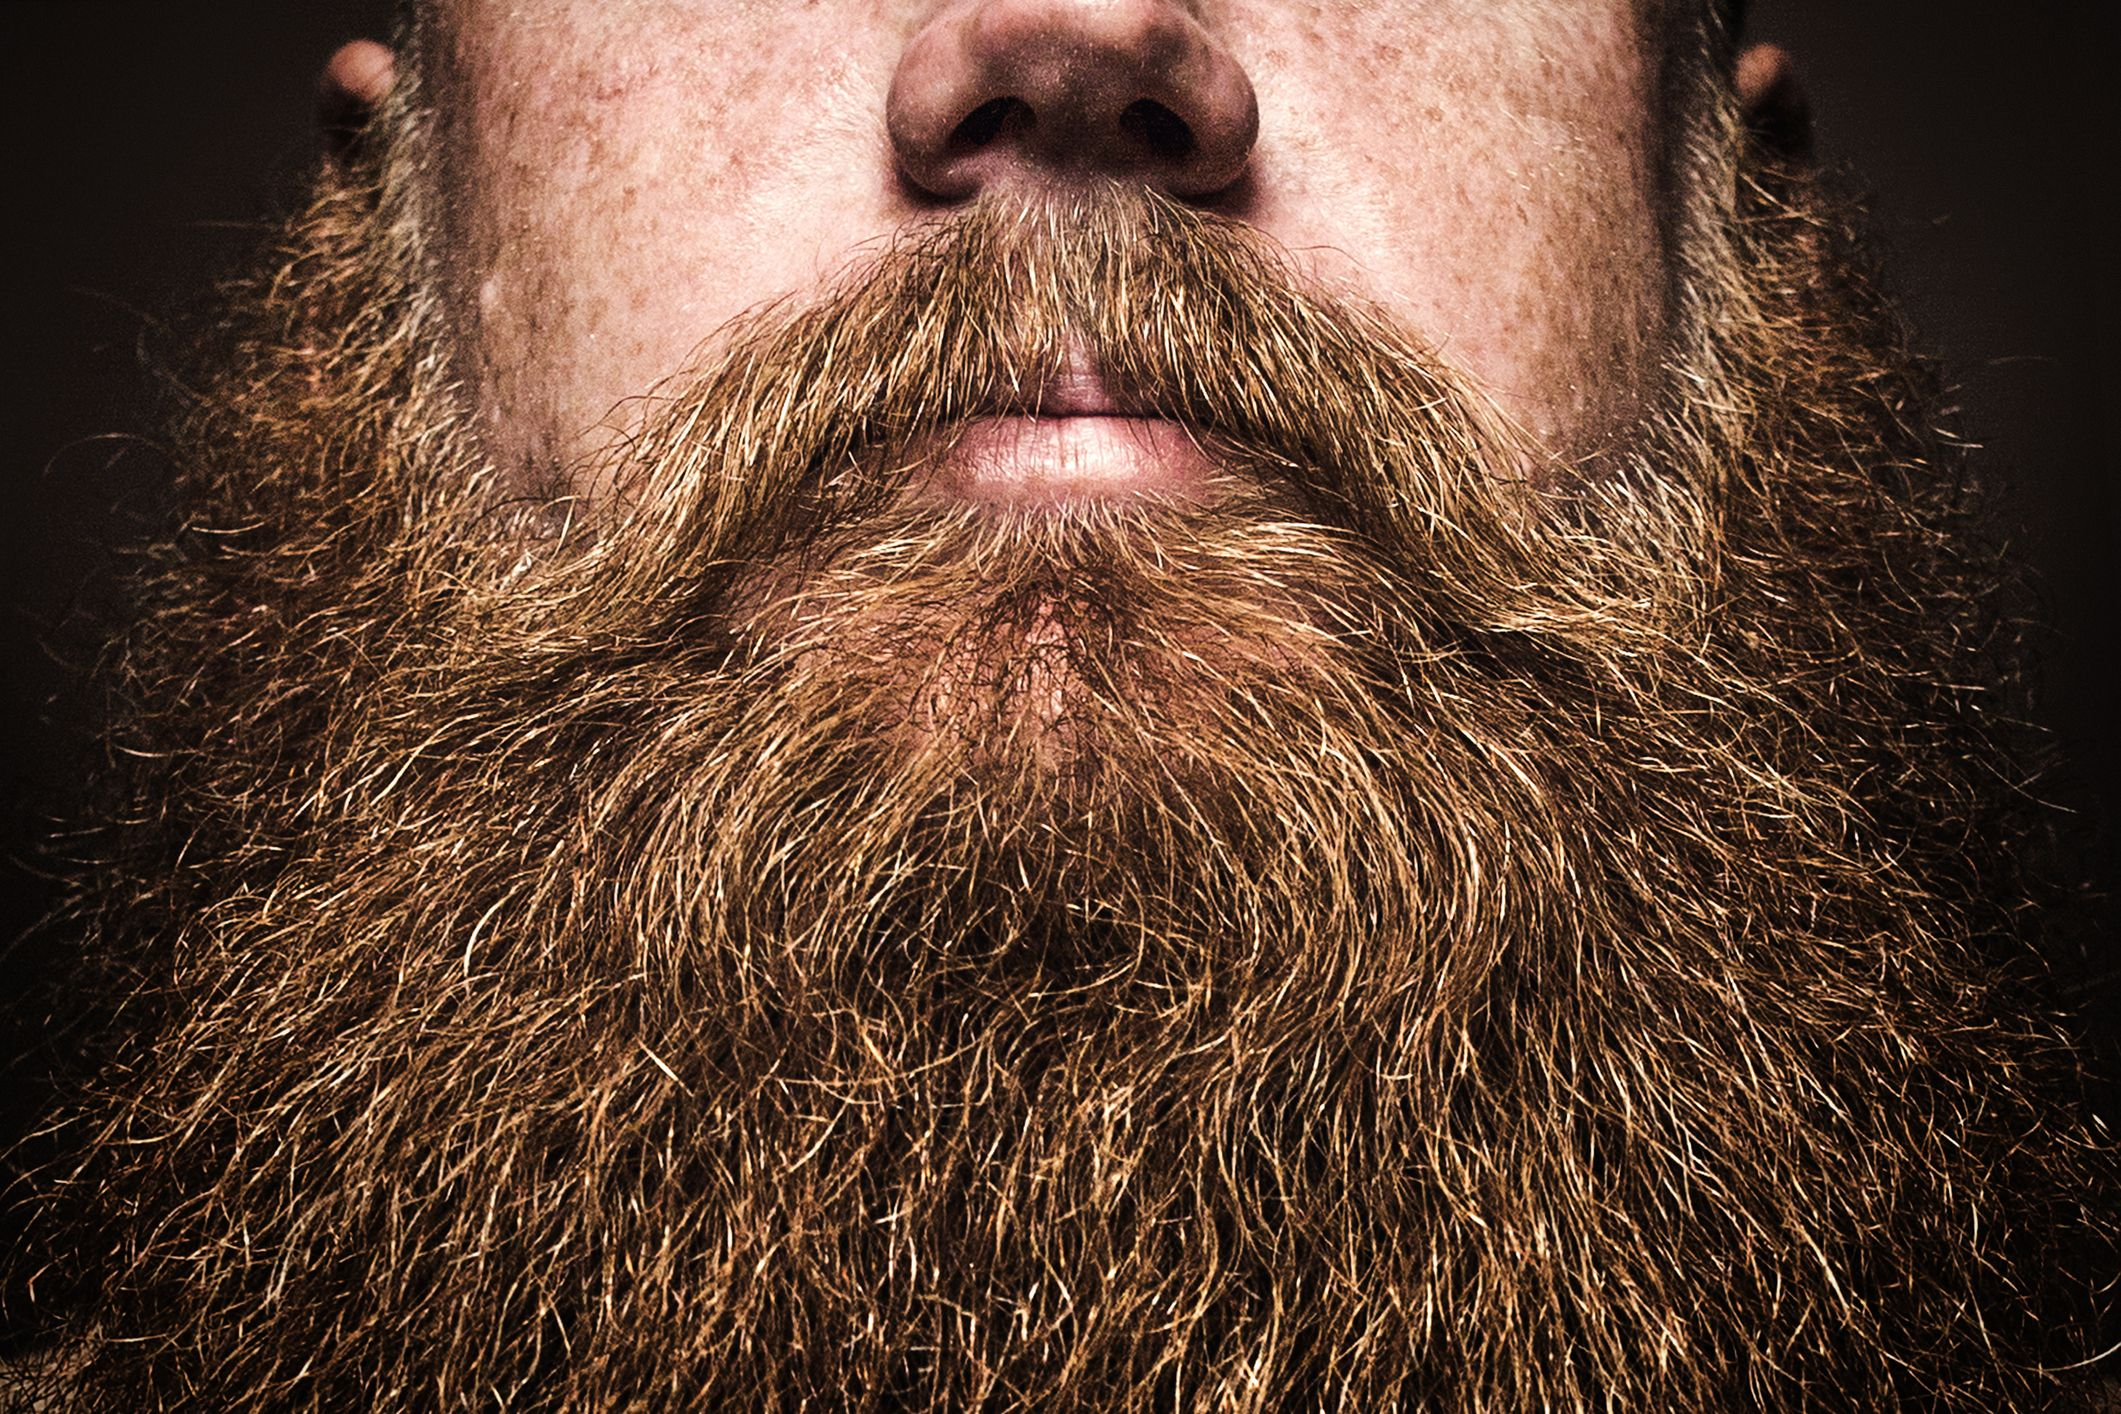 Thousands of Men Are Growing Hipster Beards with This Hair-loss Drug